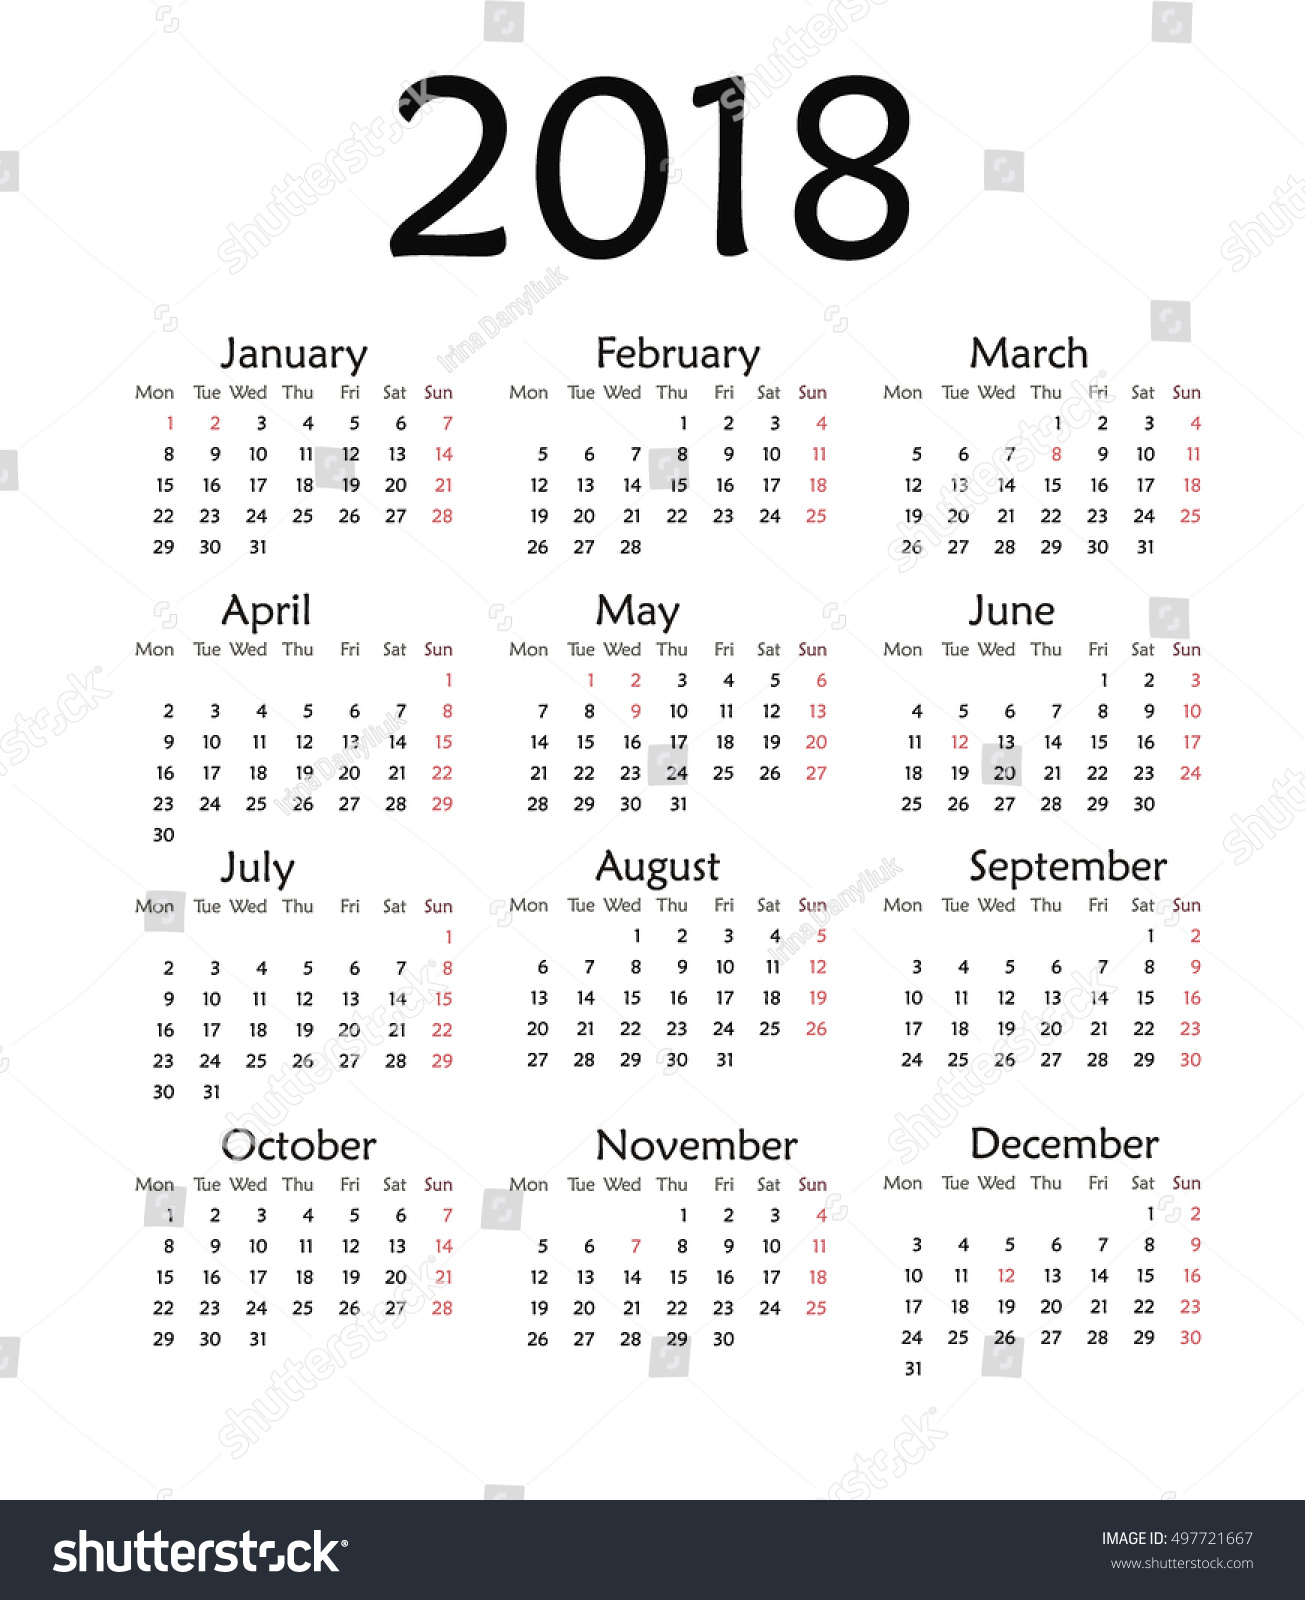 Calendar Month Illustration : Simple calendar vector template design stock